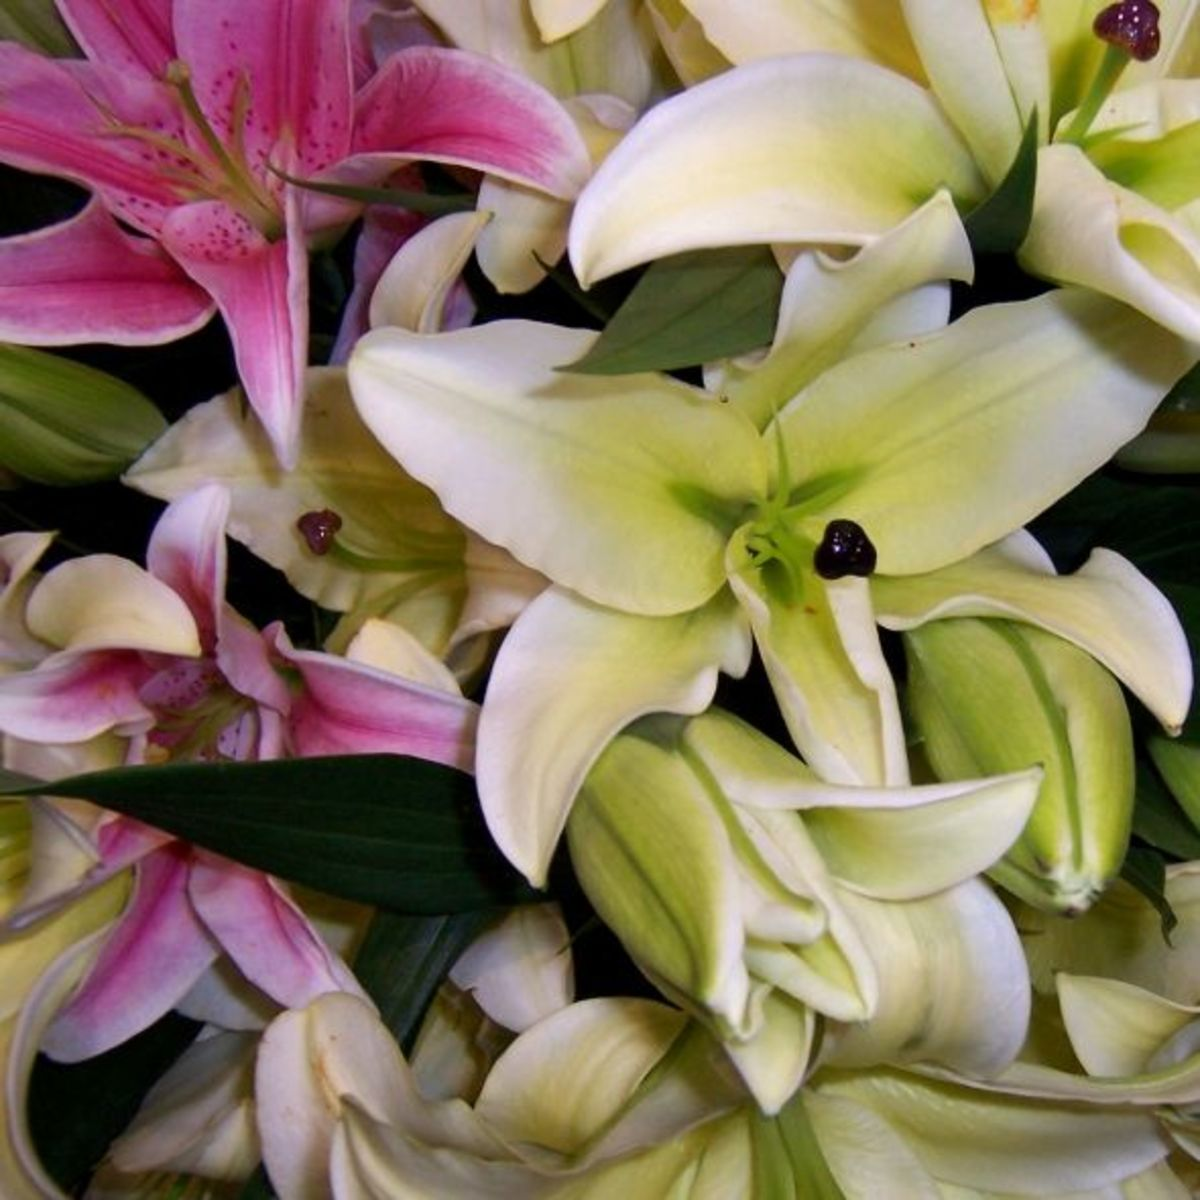 Close-up photo of Stargazer lilies and Casablanca lilies